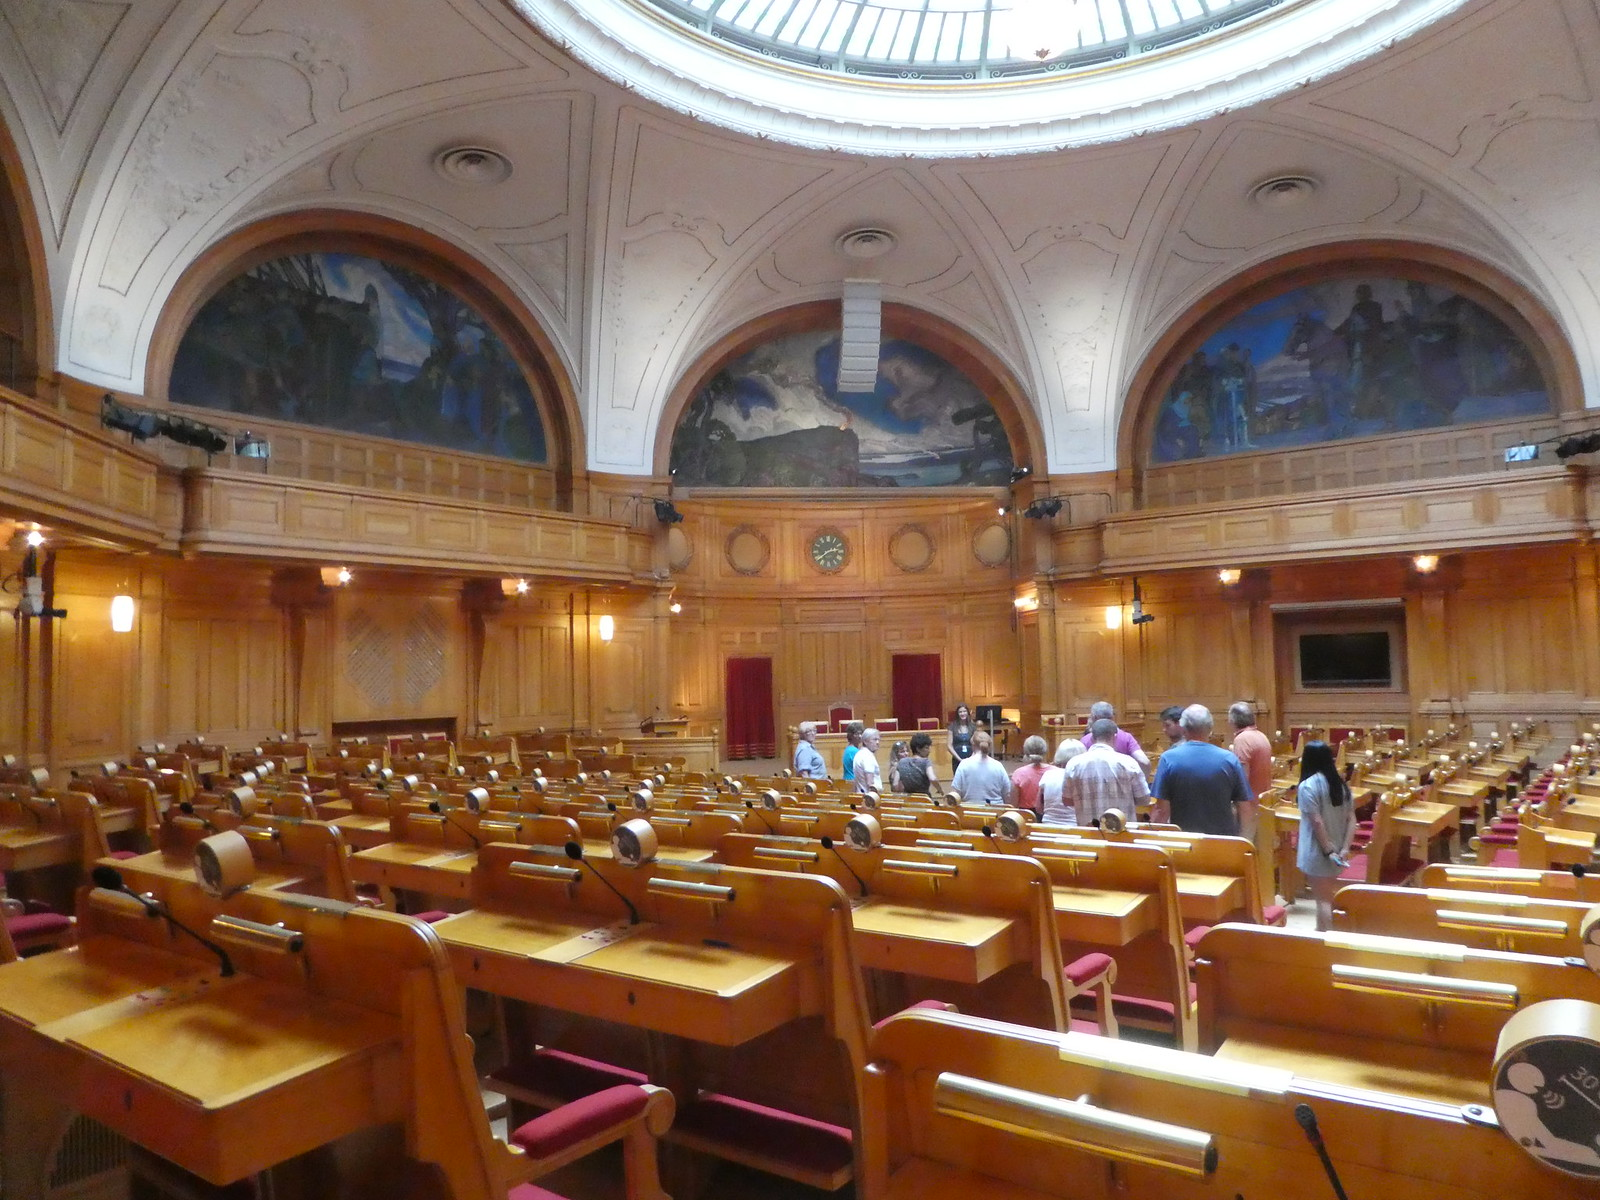 The Octagonal Second Chamber, Swedish Parliament, Stockholm